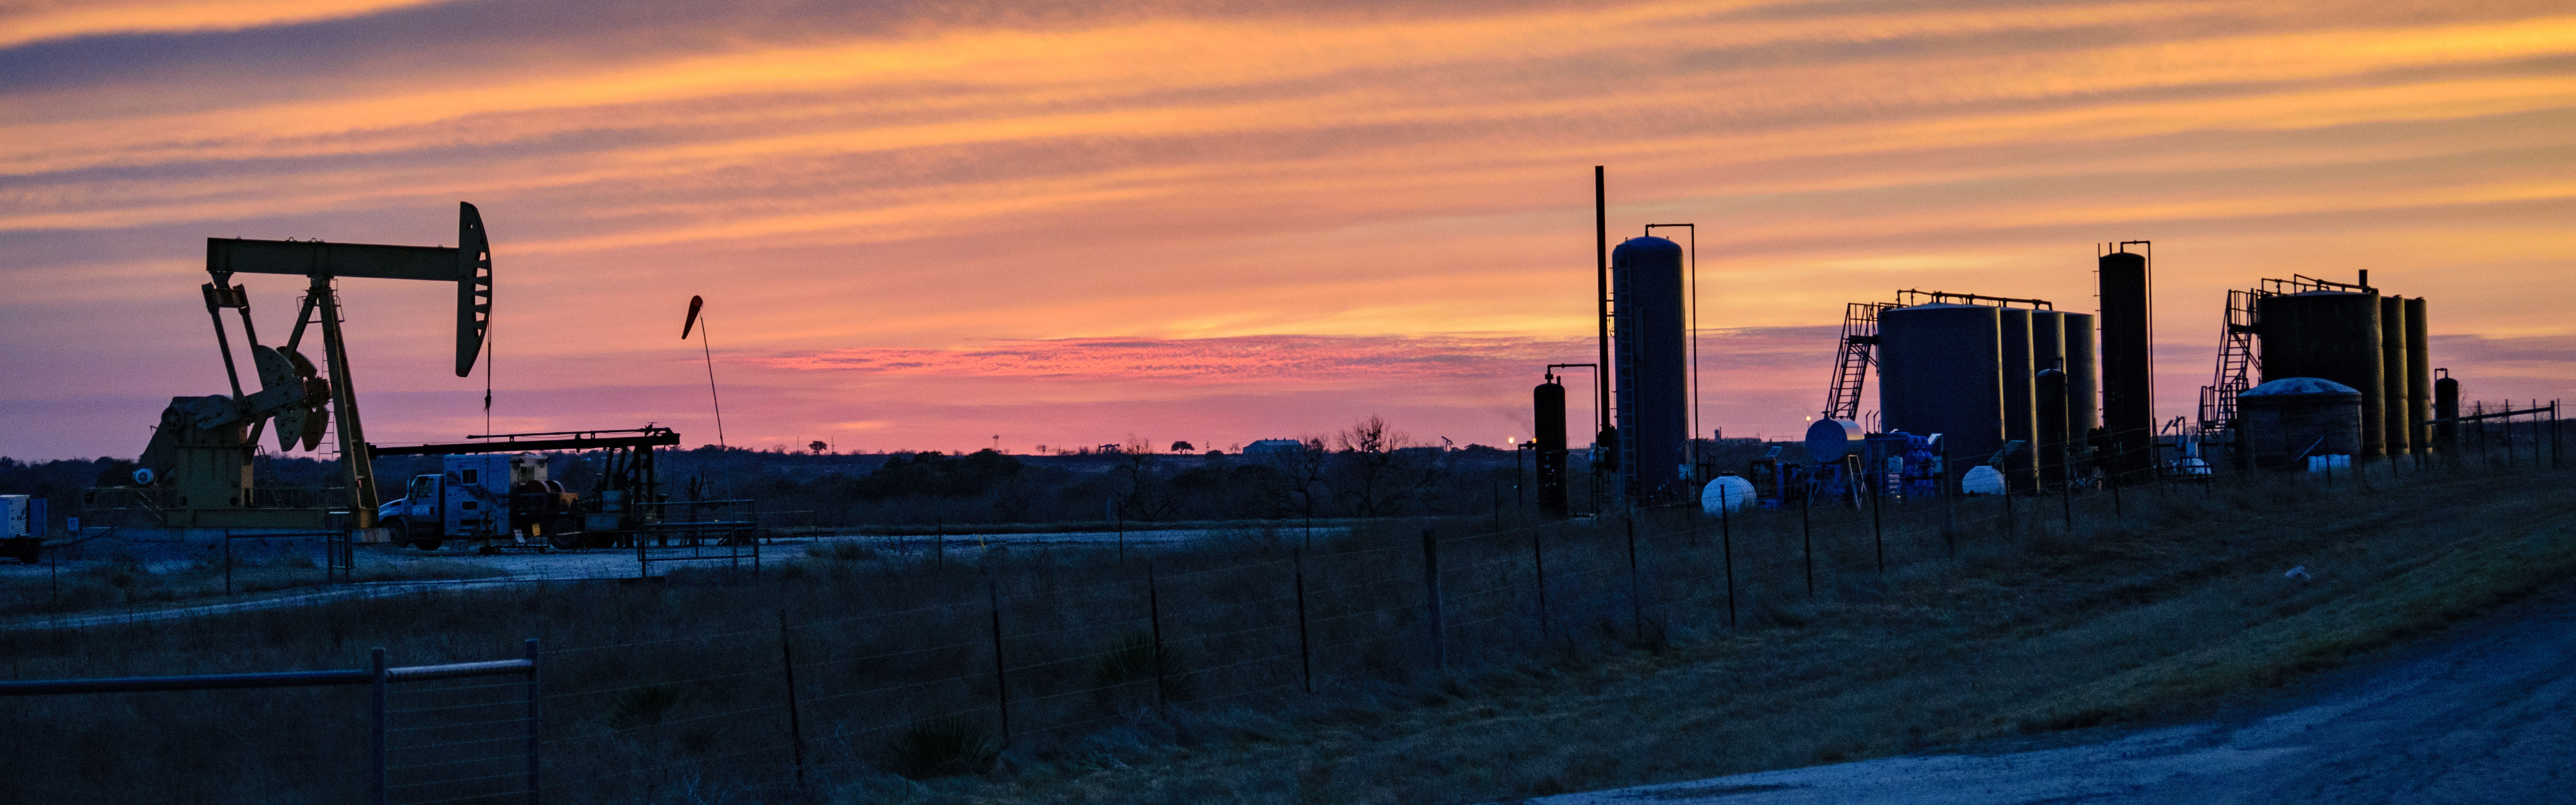 Oil and gas pump in field at sunset